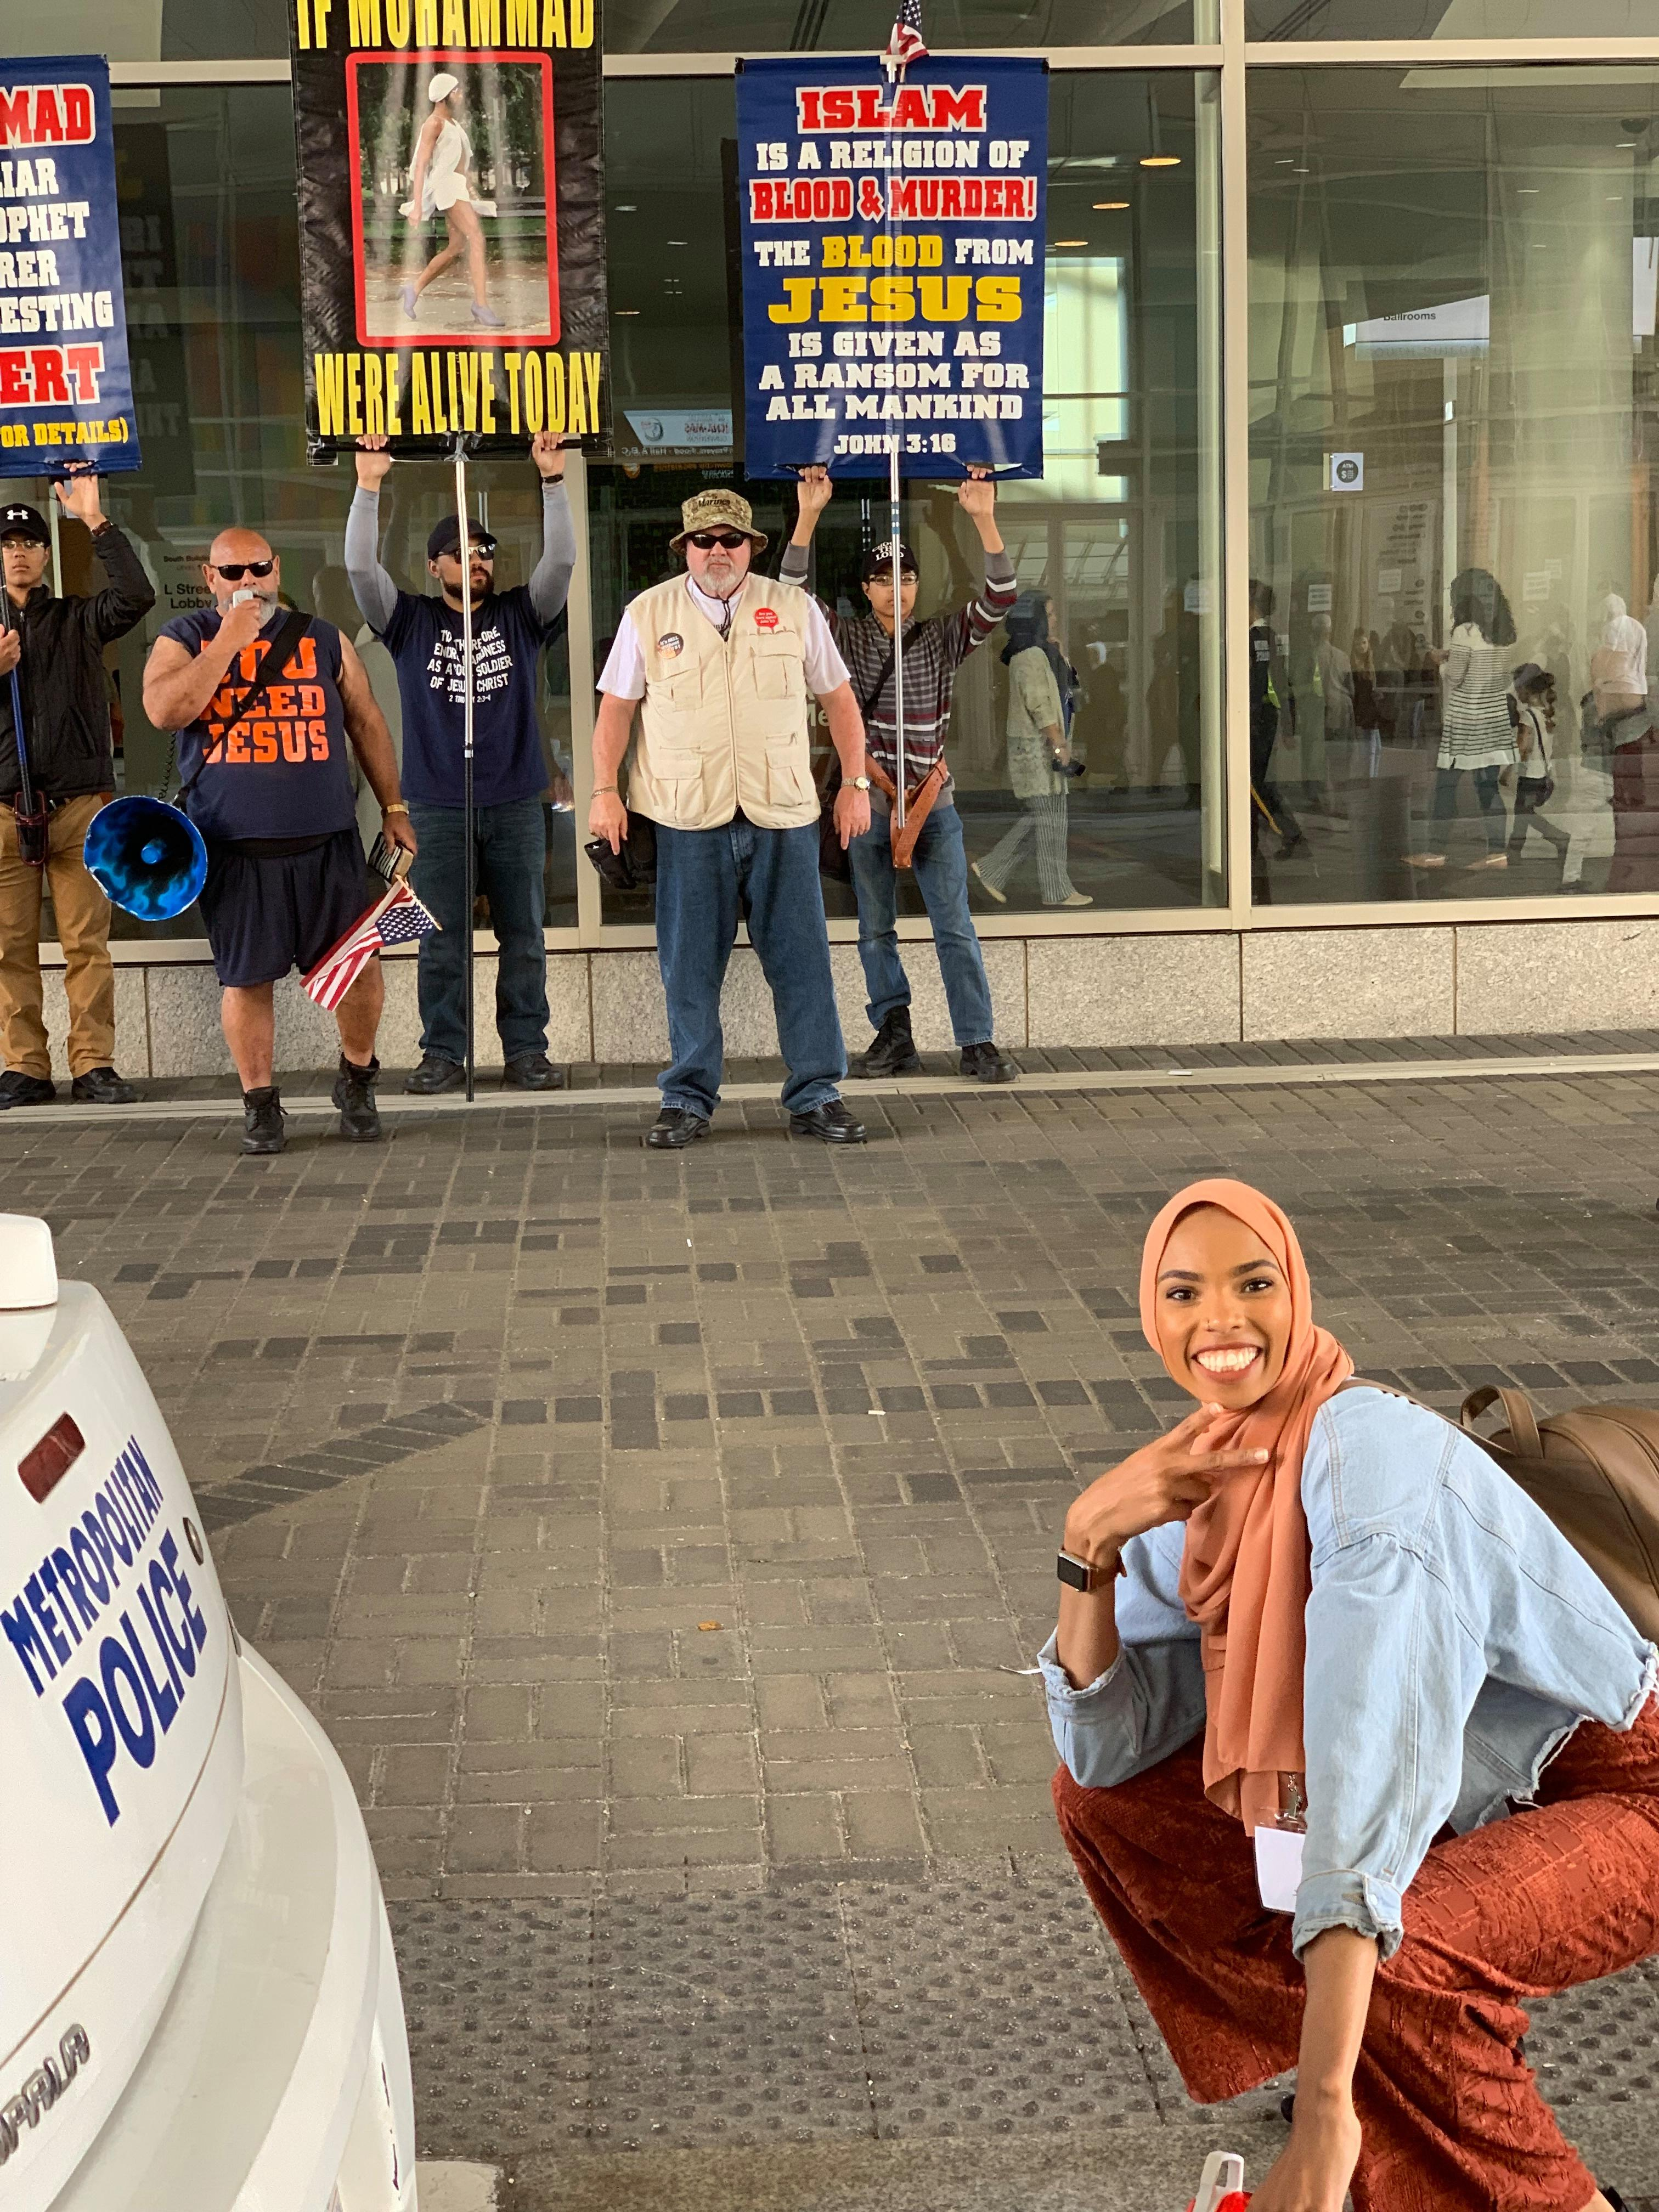 'Love in the face of bigotry': woman takes smiling stand against Islamophobic protesters